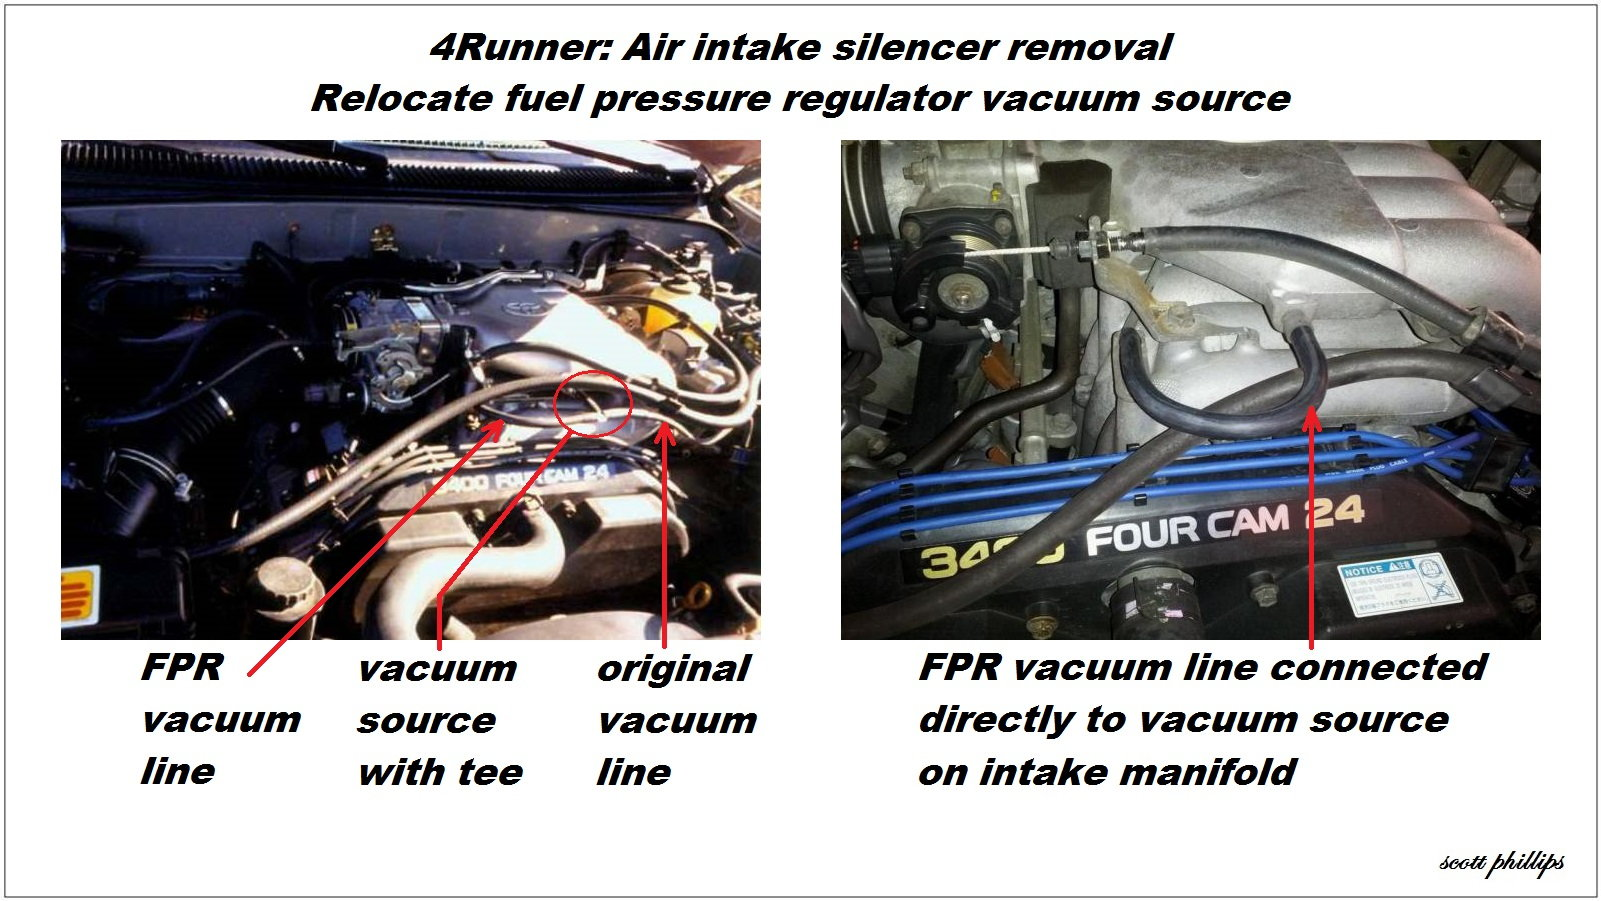 Toyota 4Runner 1996-2002 How to Remove Air Intake Silencer